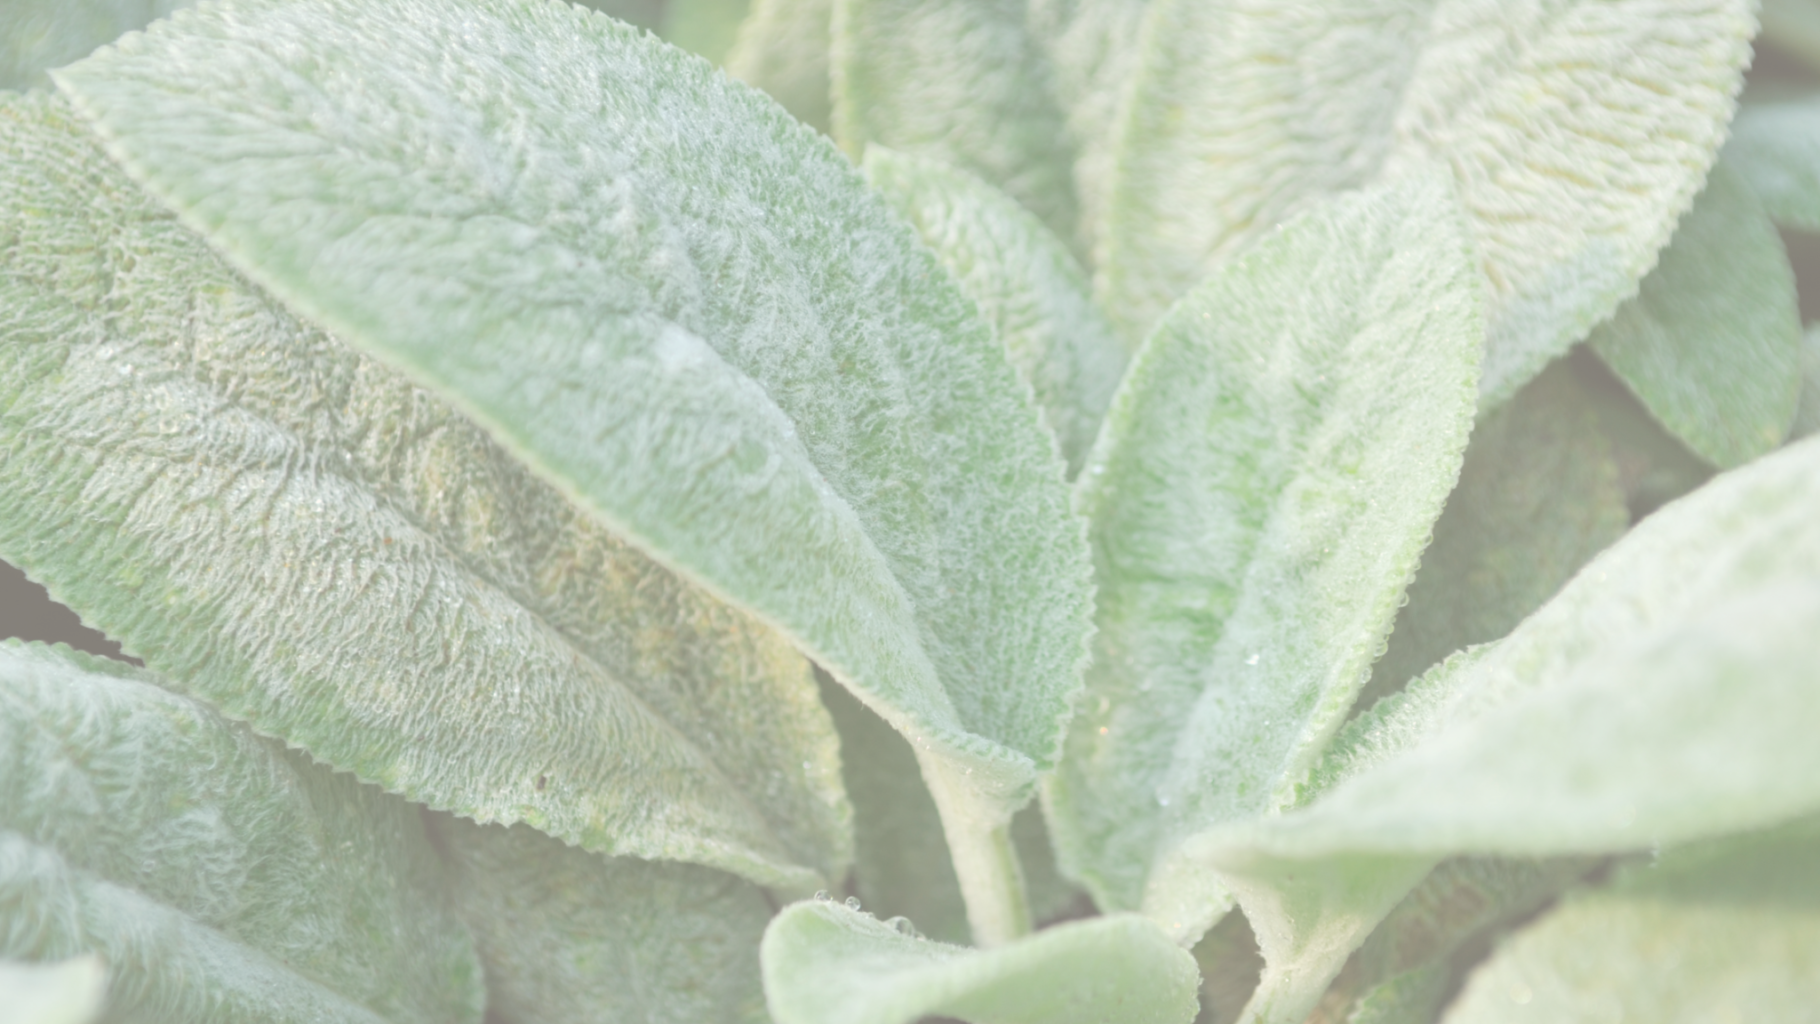 lambs ear sold at patuxent nursery